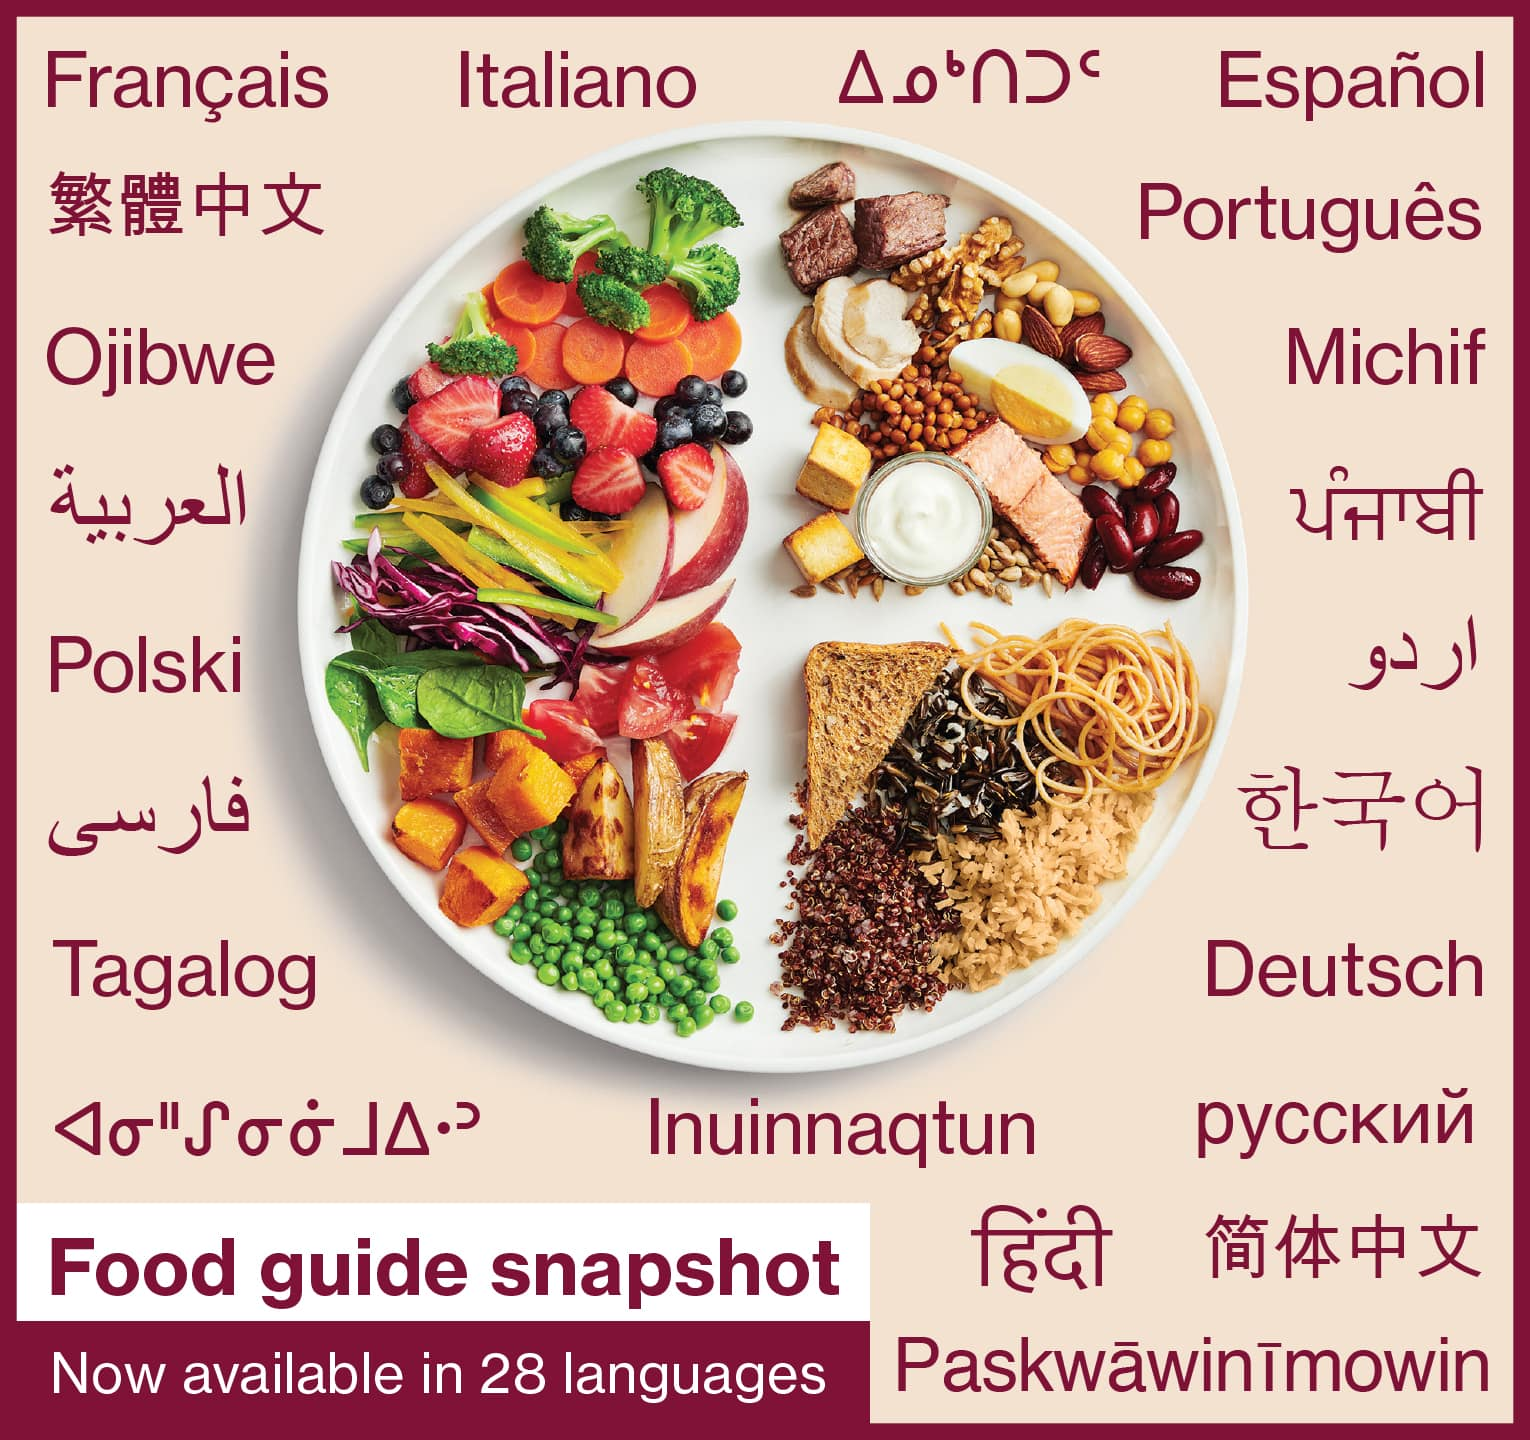 Health Canada - Canada's Food Guide Snapshot Now Available in 28 Languages